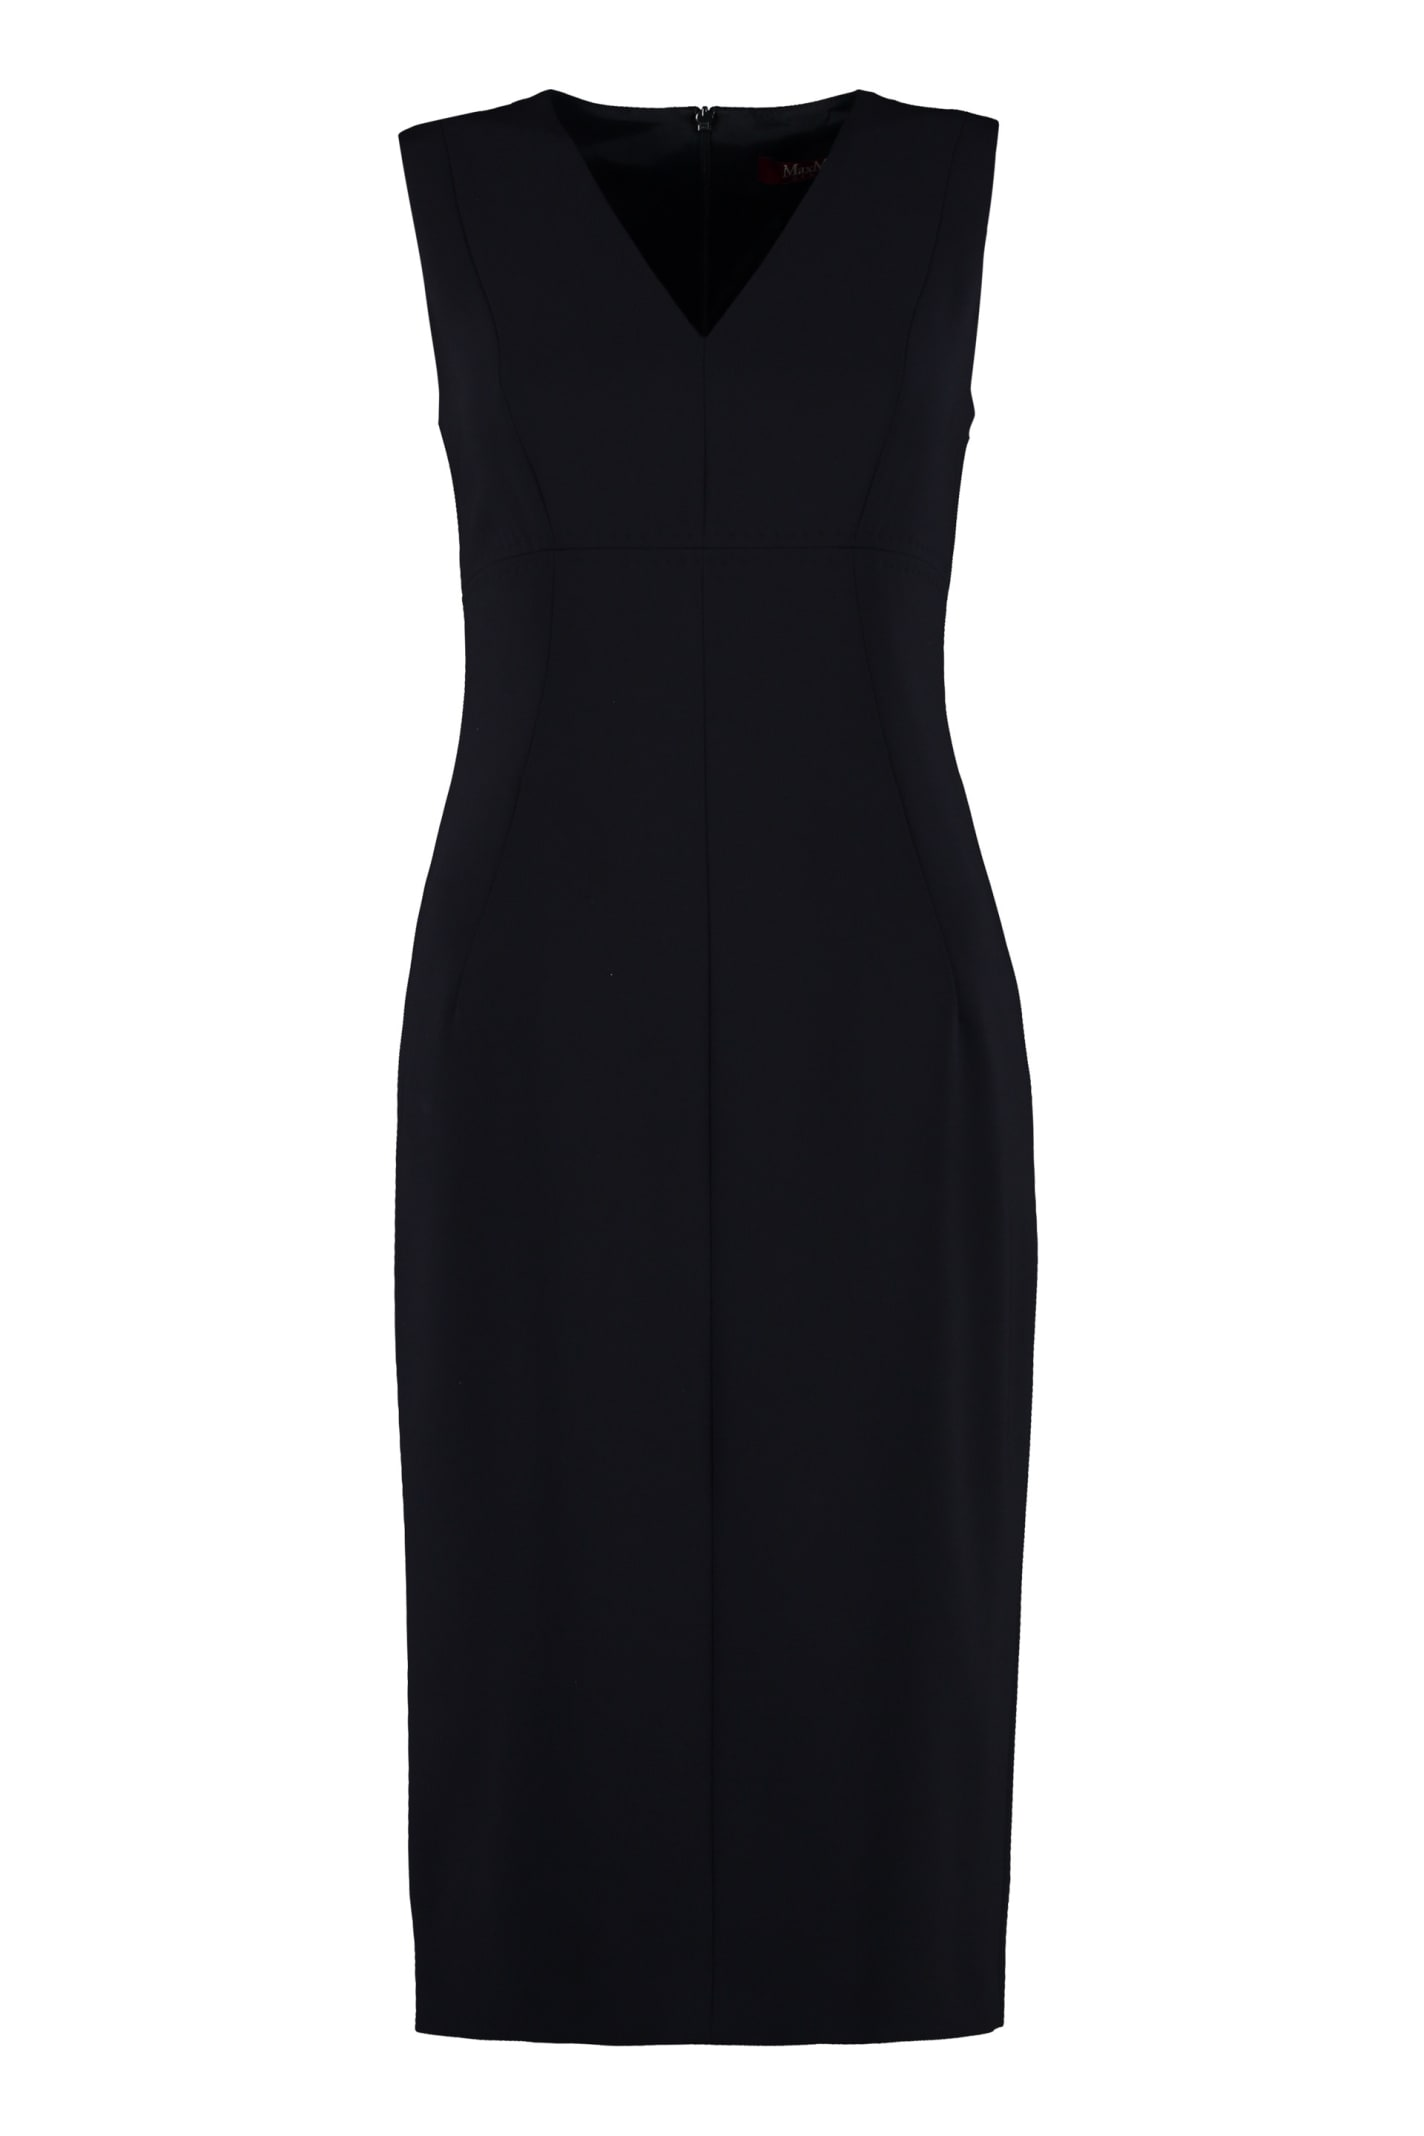 Max Mara Studio Orosei Cady Dress